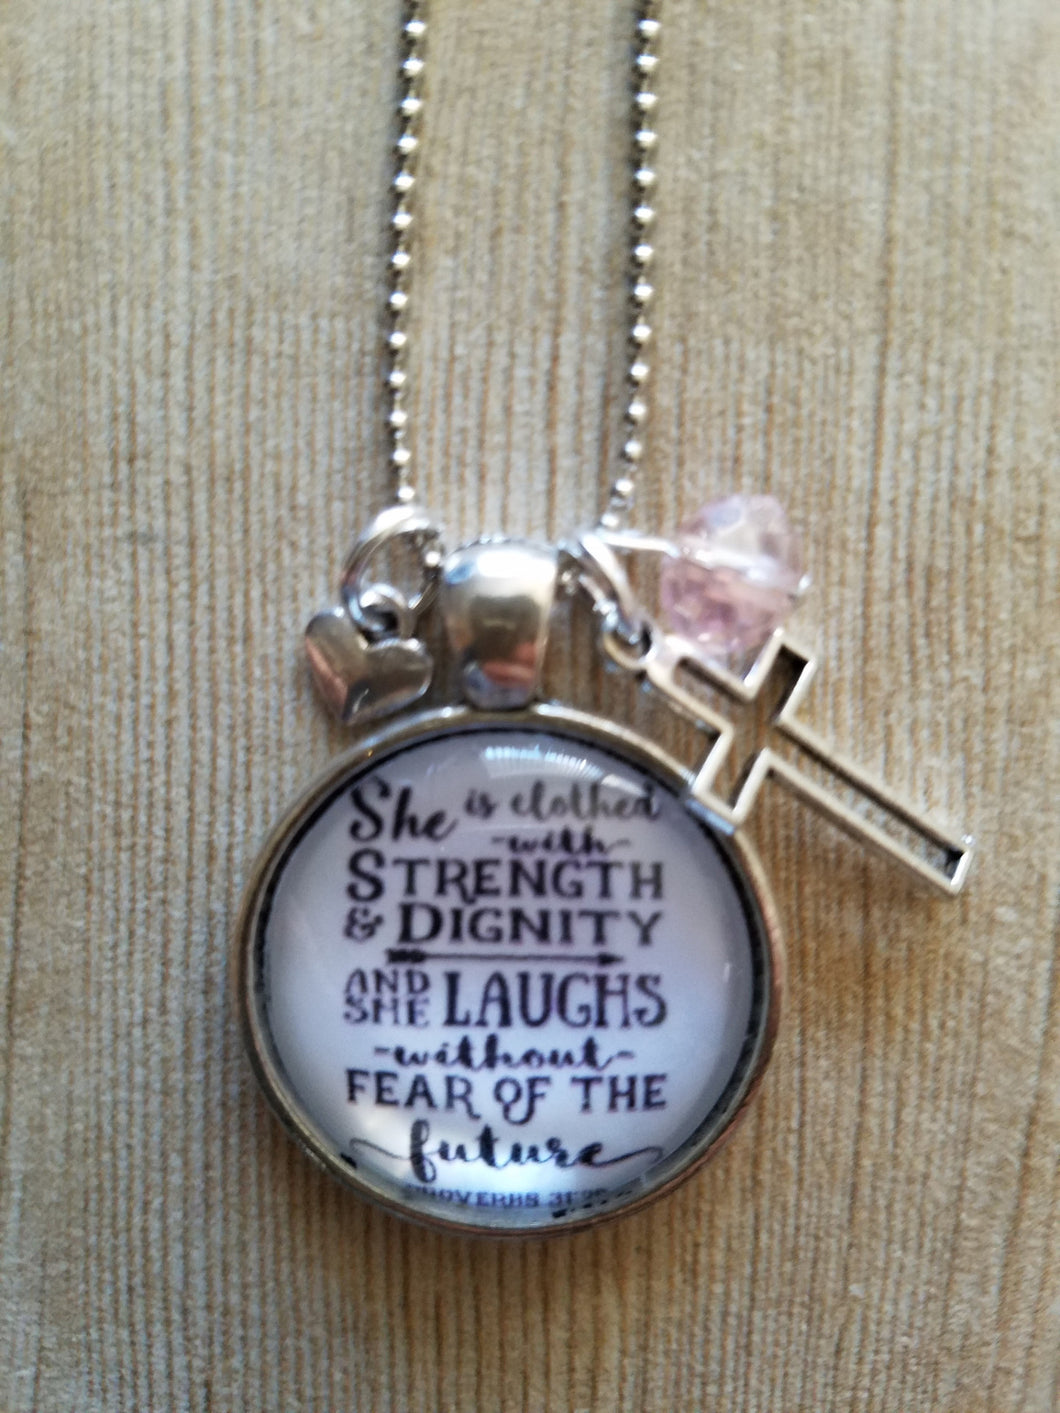 Strenght & Dignity - Proverbs 31:25 - 1